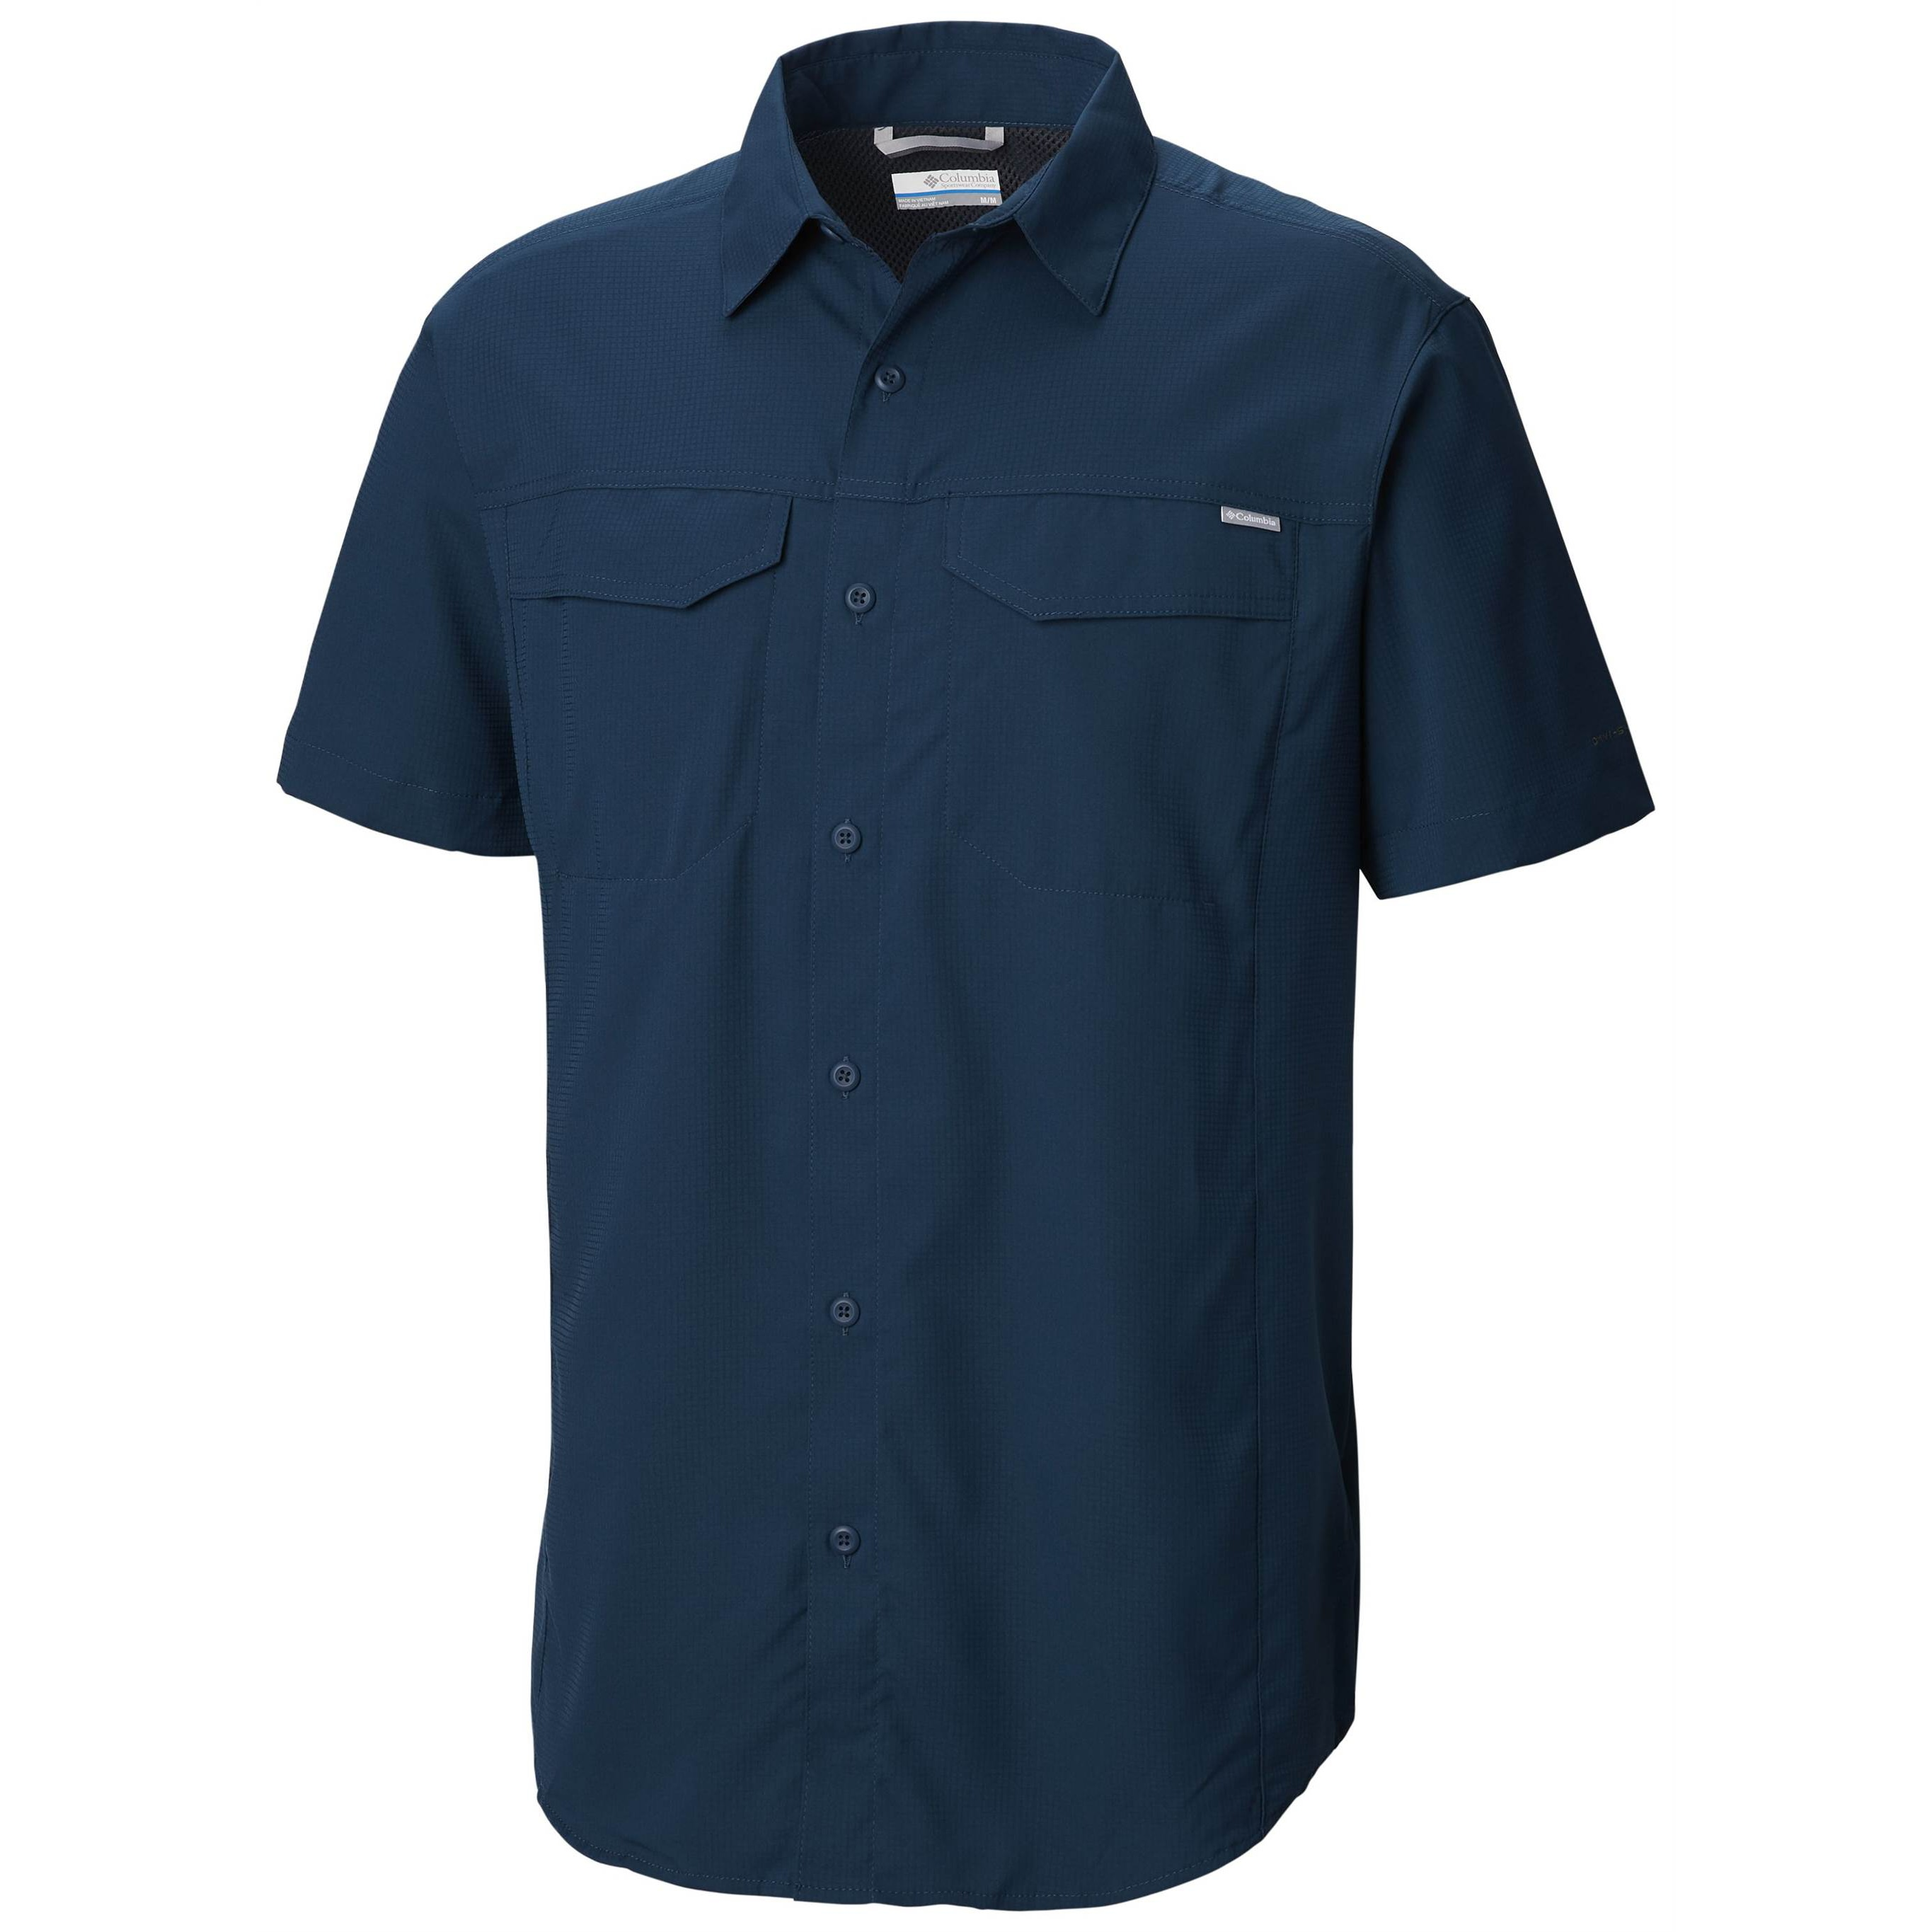 Silver Ridge Lite Shirt Short Sleeve - Men's